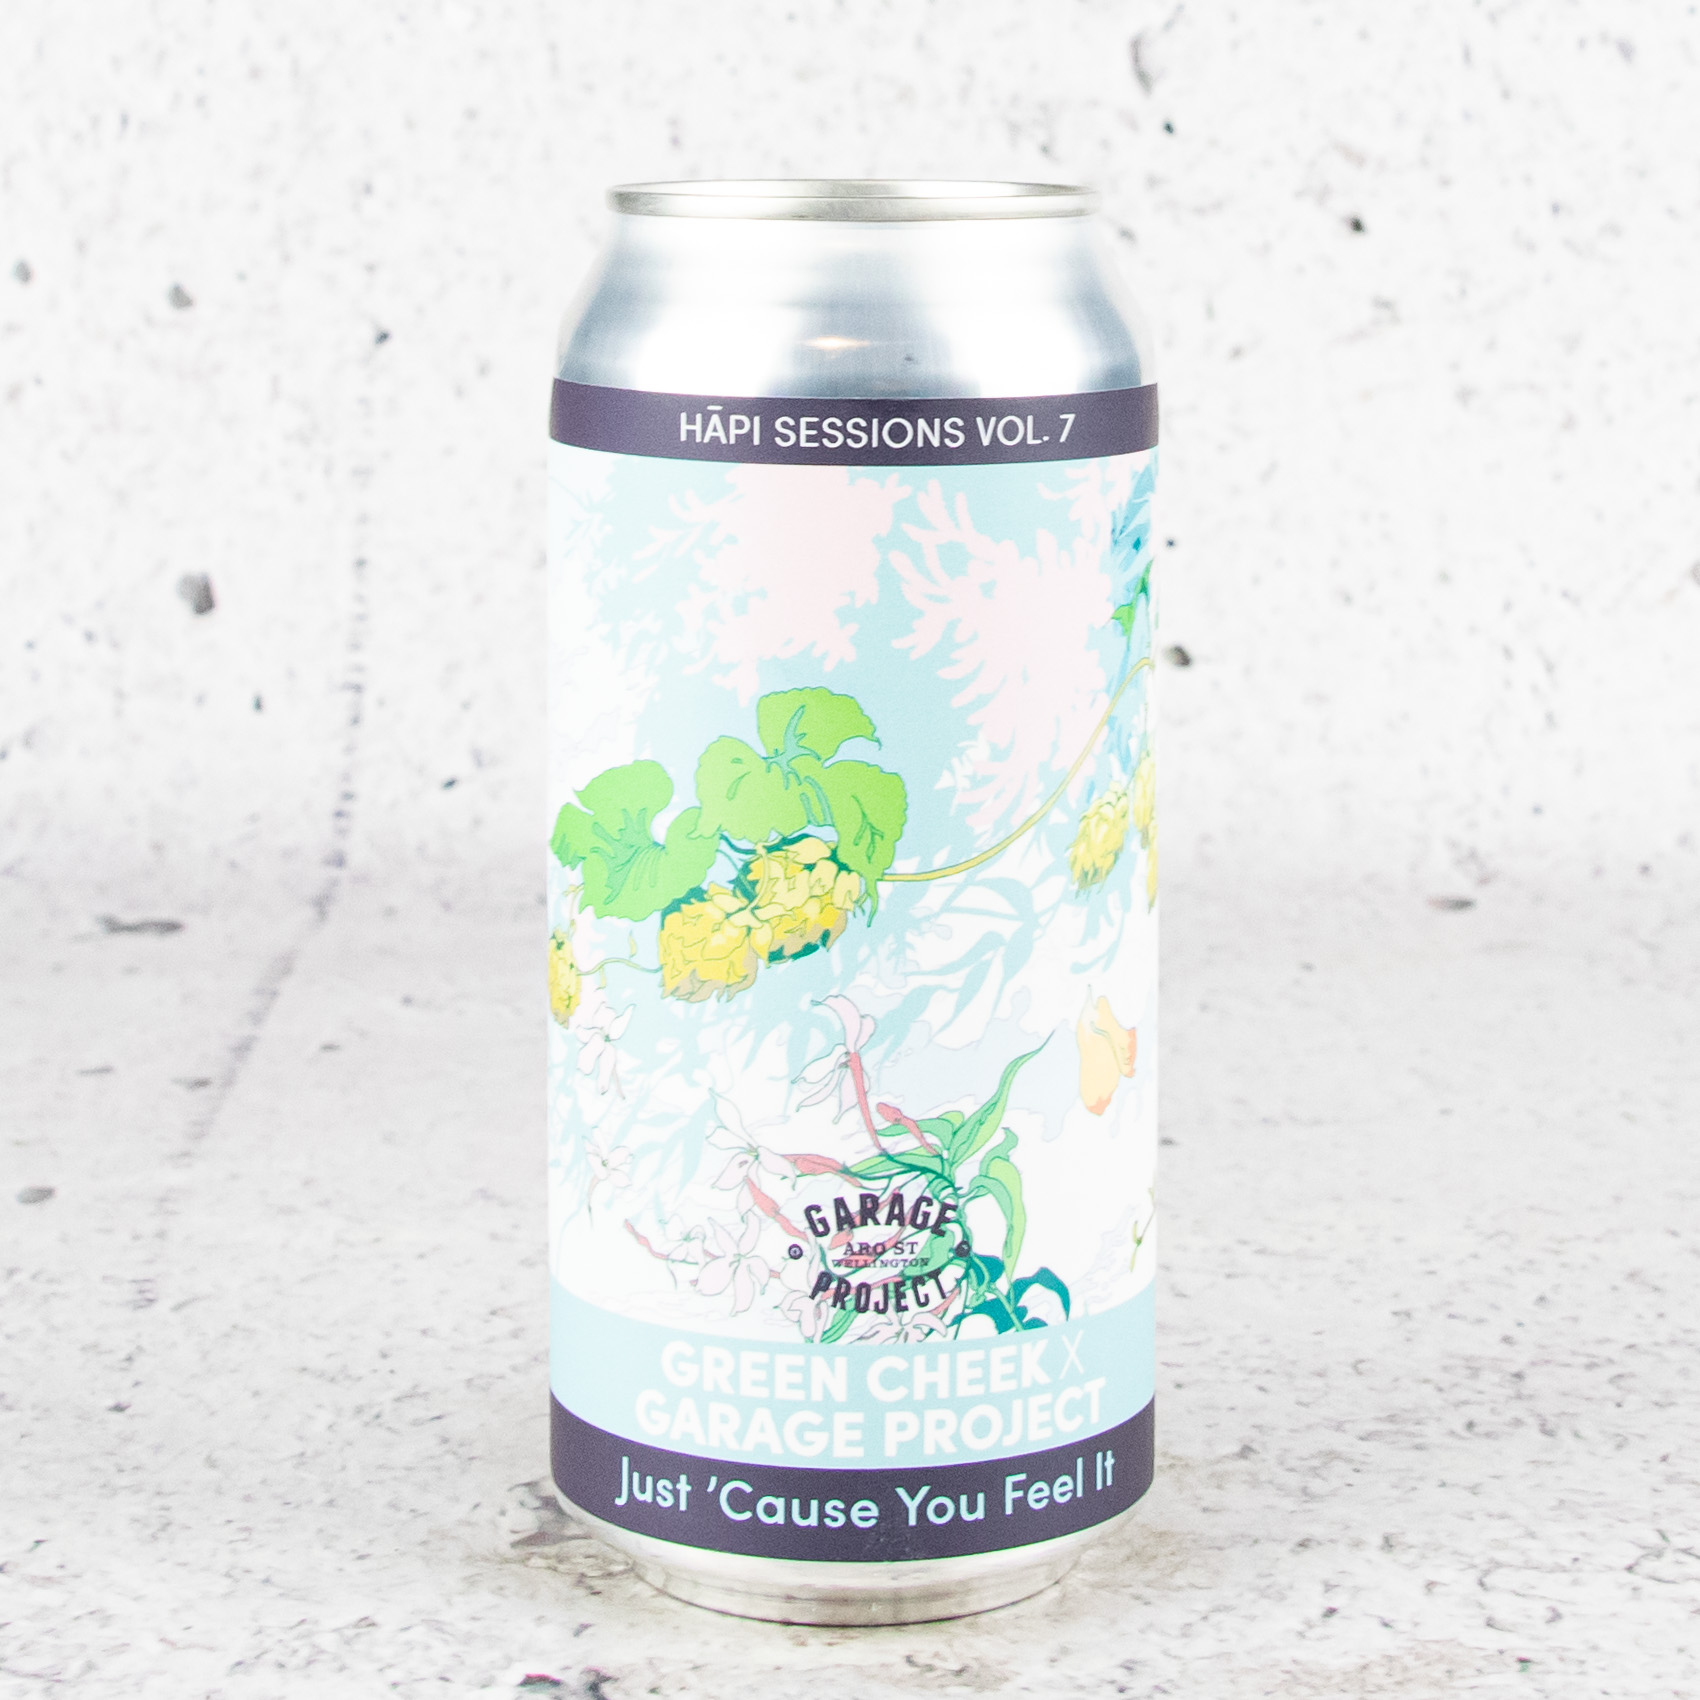 Garage Project x Green Cheek Hāpi Sessions: Just 'Cause You Feel It California Dry Double IPA